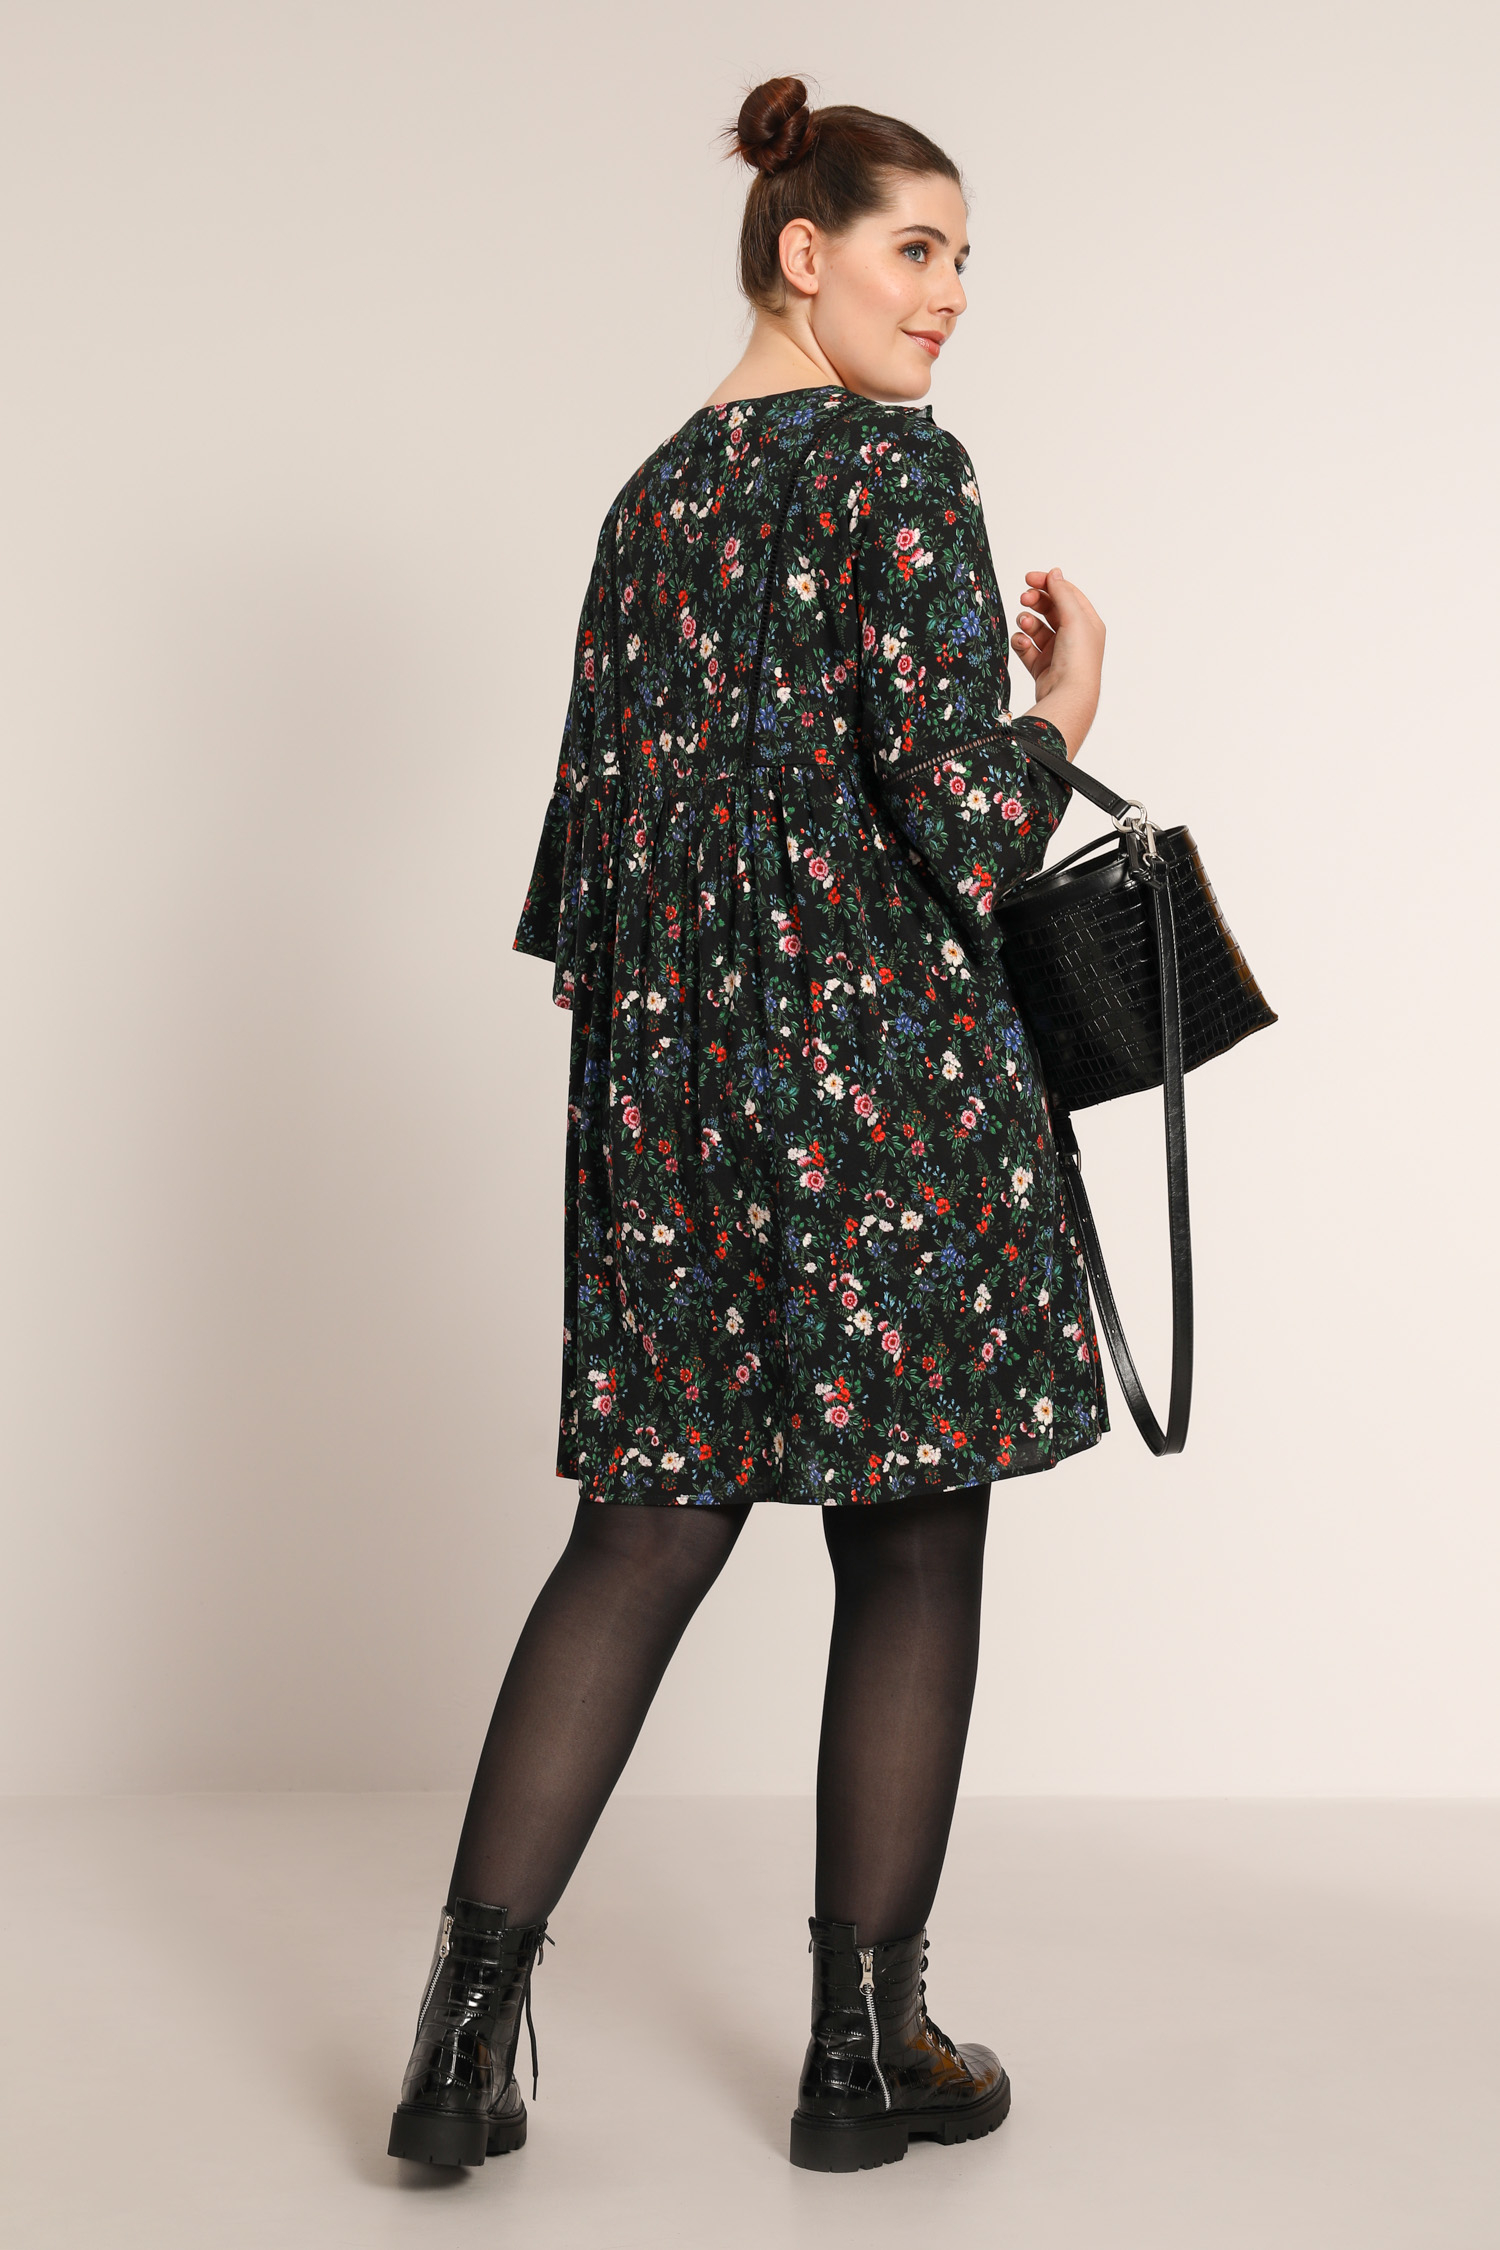 Printed dress with laces at the collar